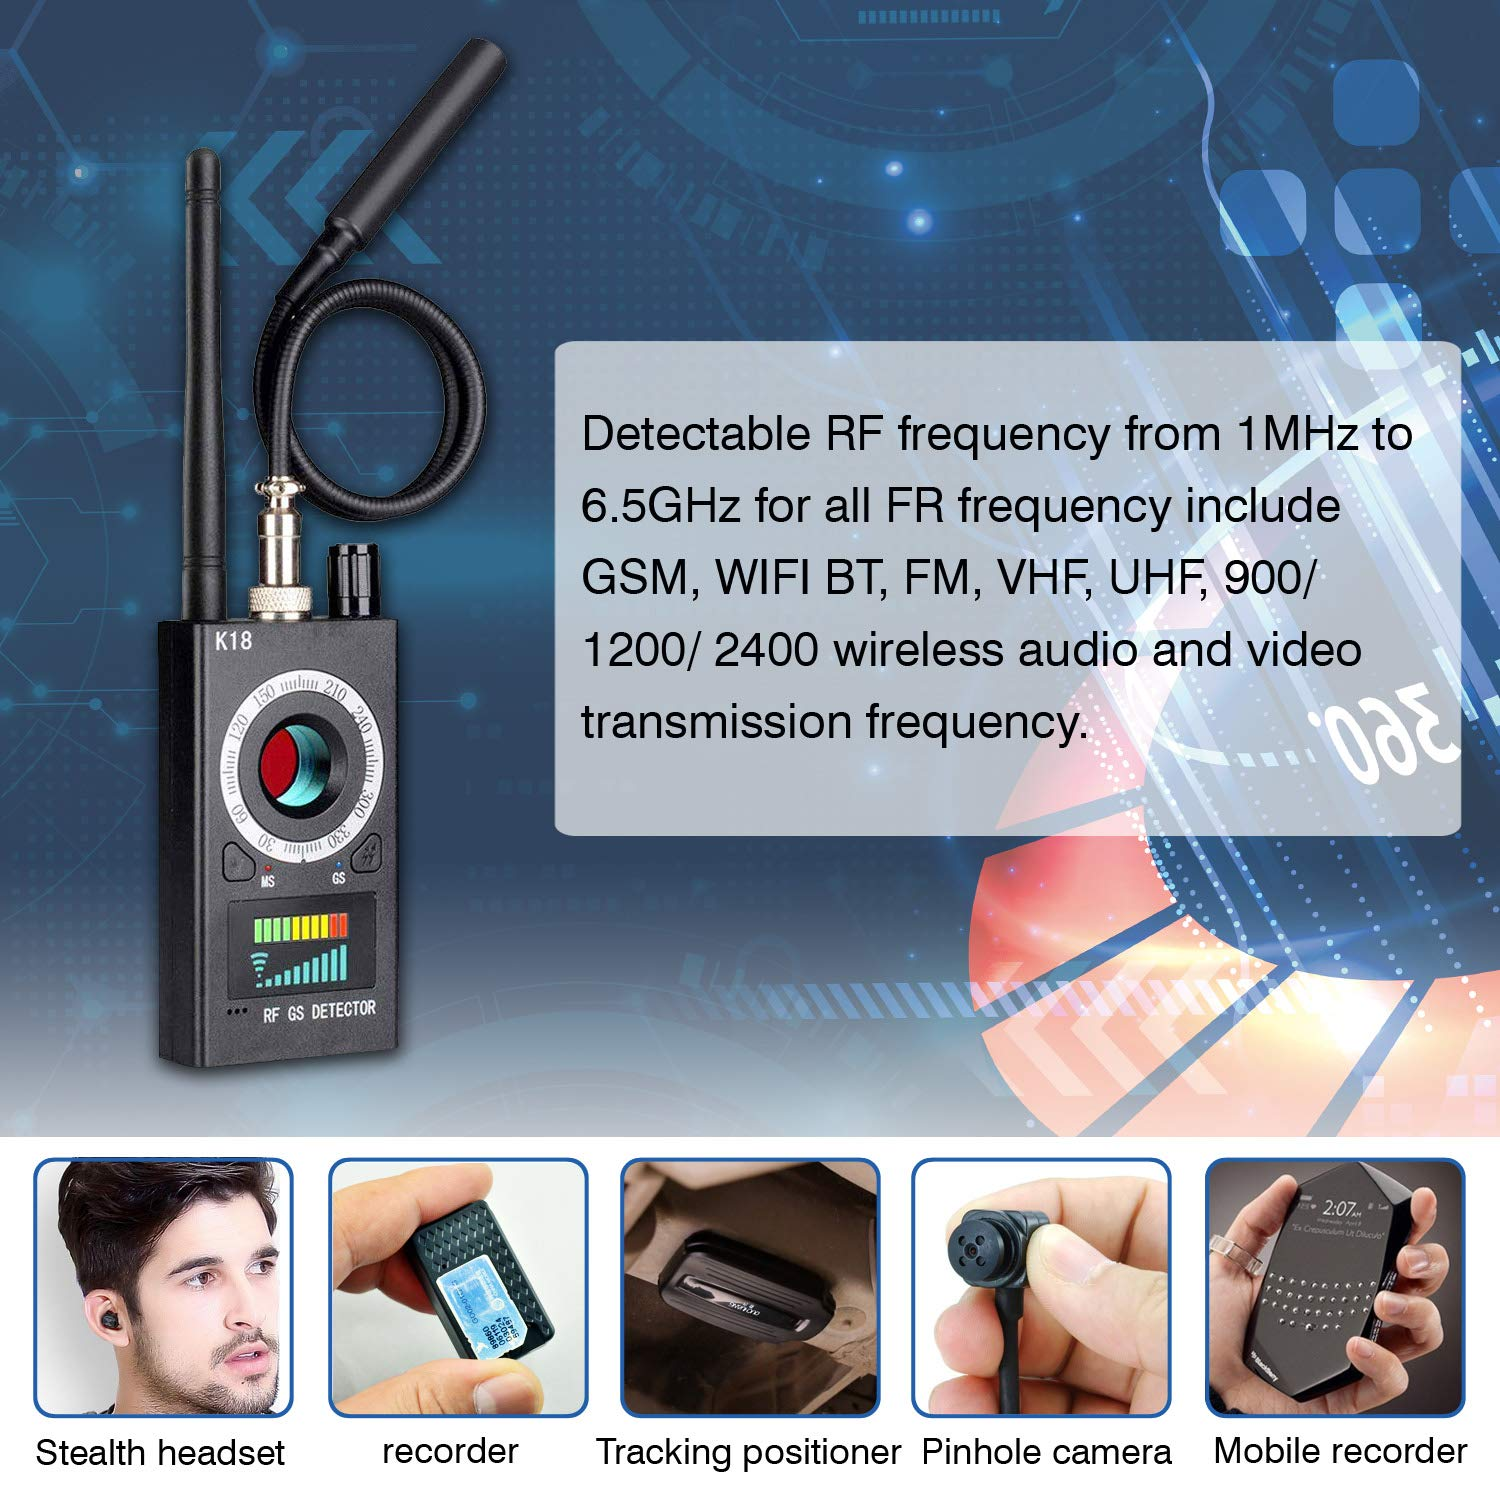 Anti Spy Detector & Camera Finder RF Signal Detector GPS Bug Detector Hidden Camera Detector for GSM Tracking Device GPS Radar Radio Frequency Detector by techtop (Image #7)